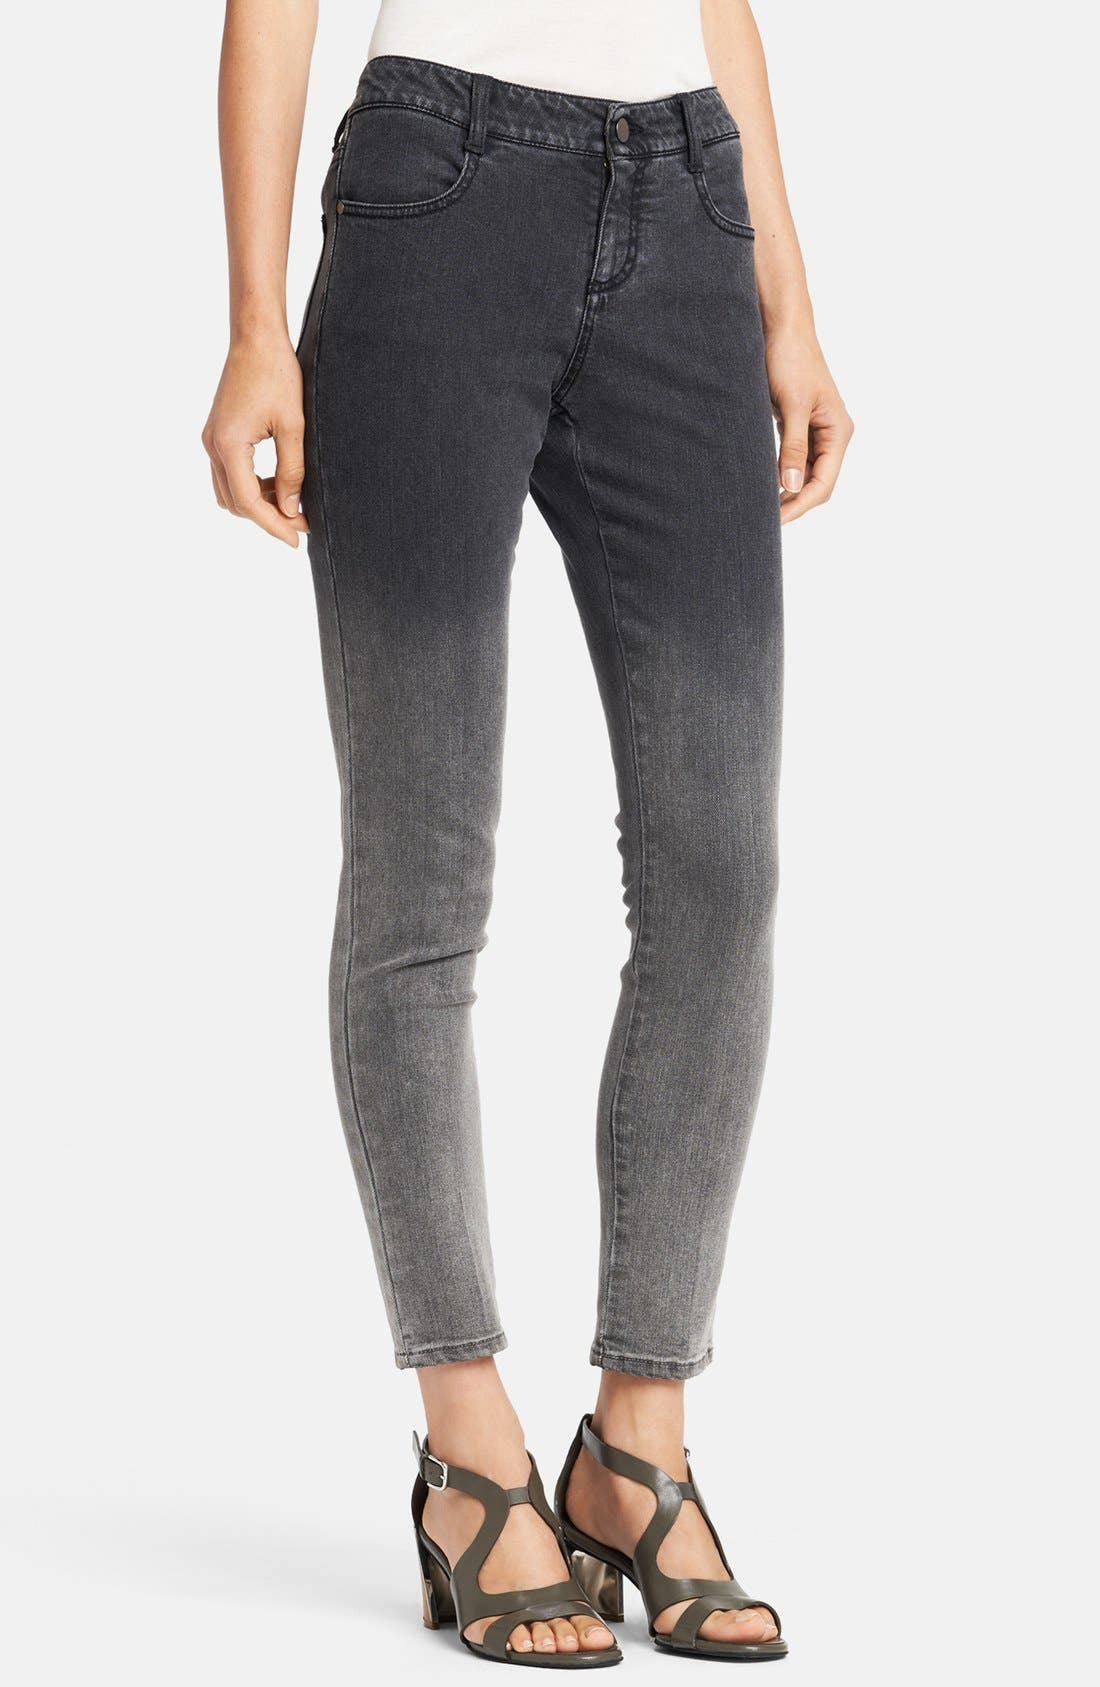 Alternate Image 1 Selected - Stella McCartney 'Simone' Dégradé Skinny Ankle Grazer Jeans